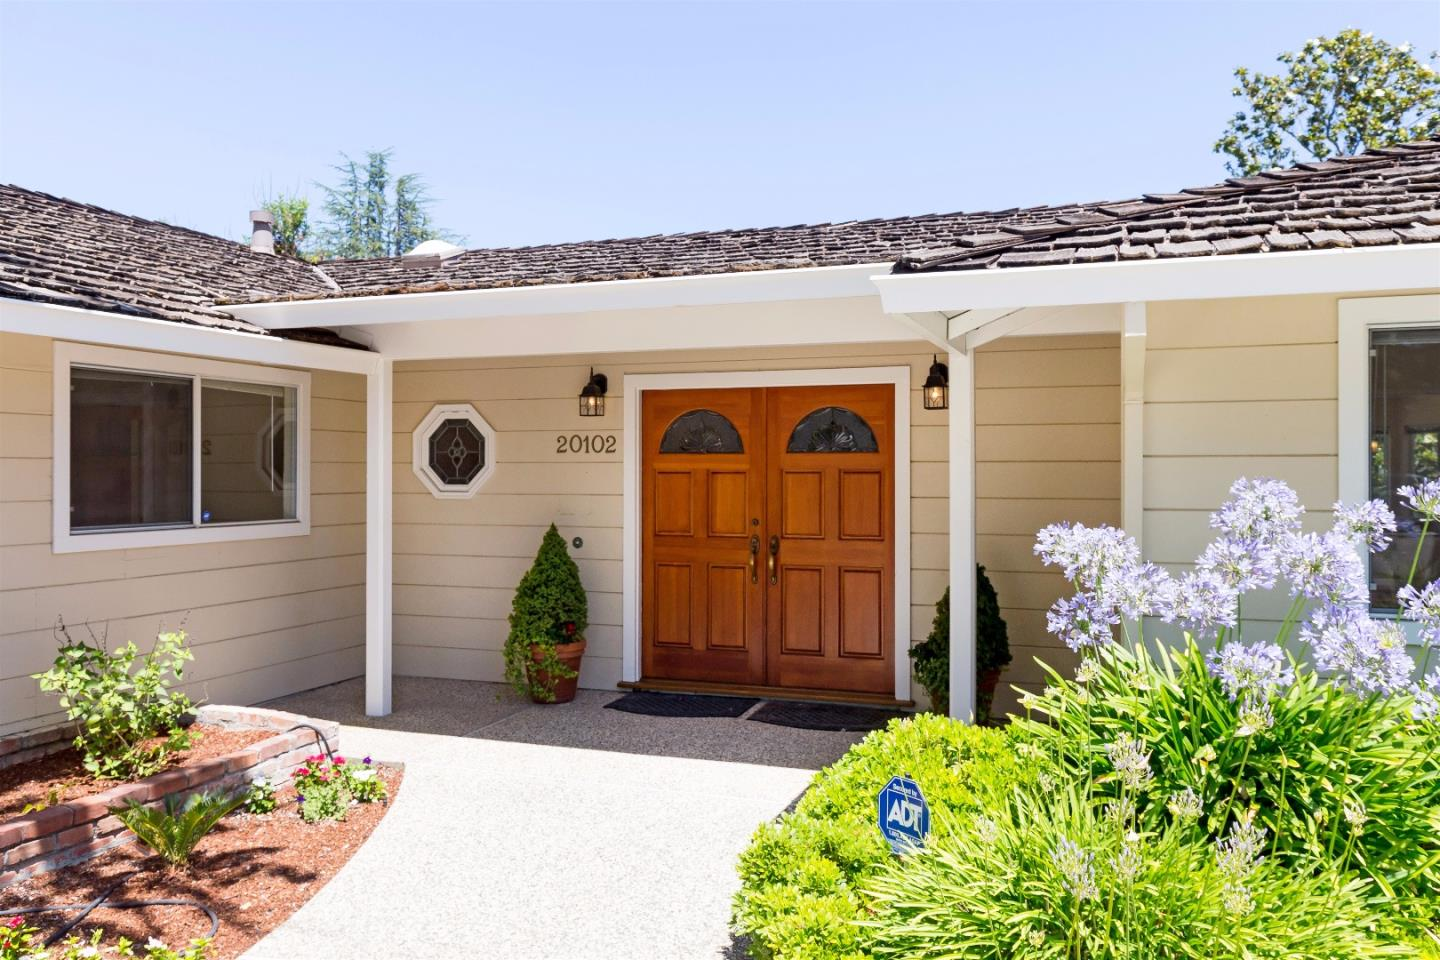 Additional photo for property listing at 20102 Chateau Drive  Saratoga, California 95070 United States